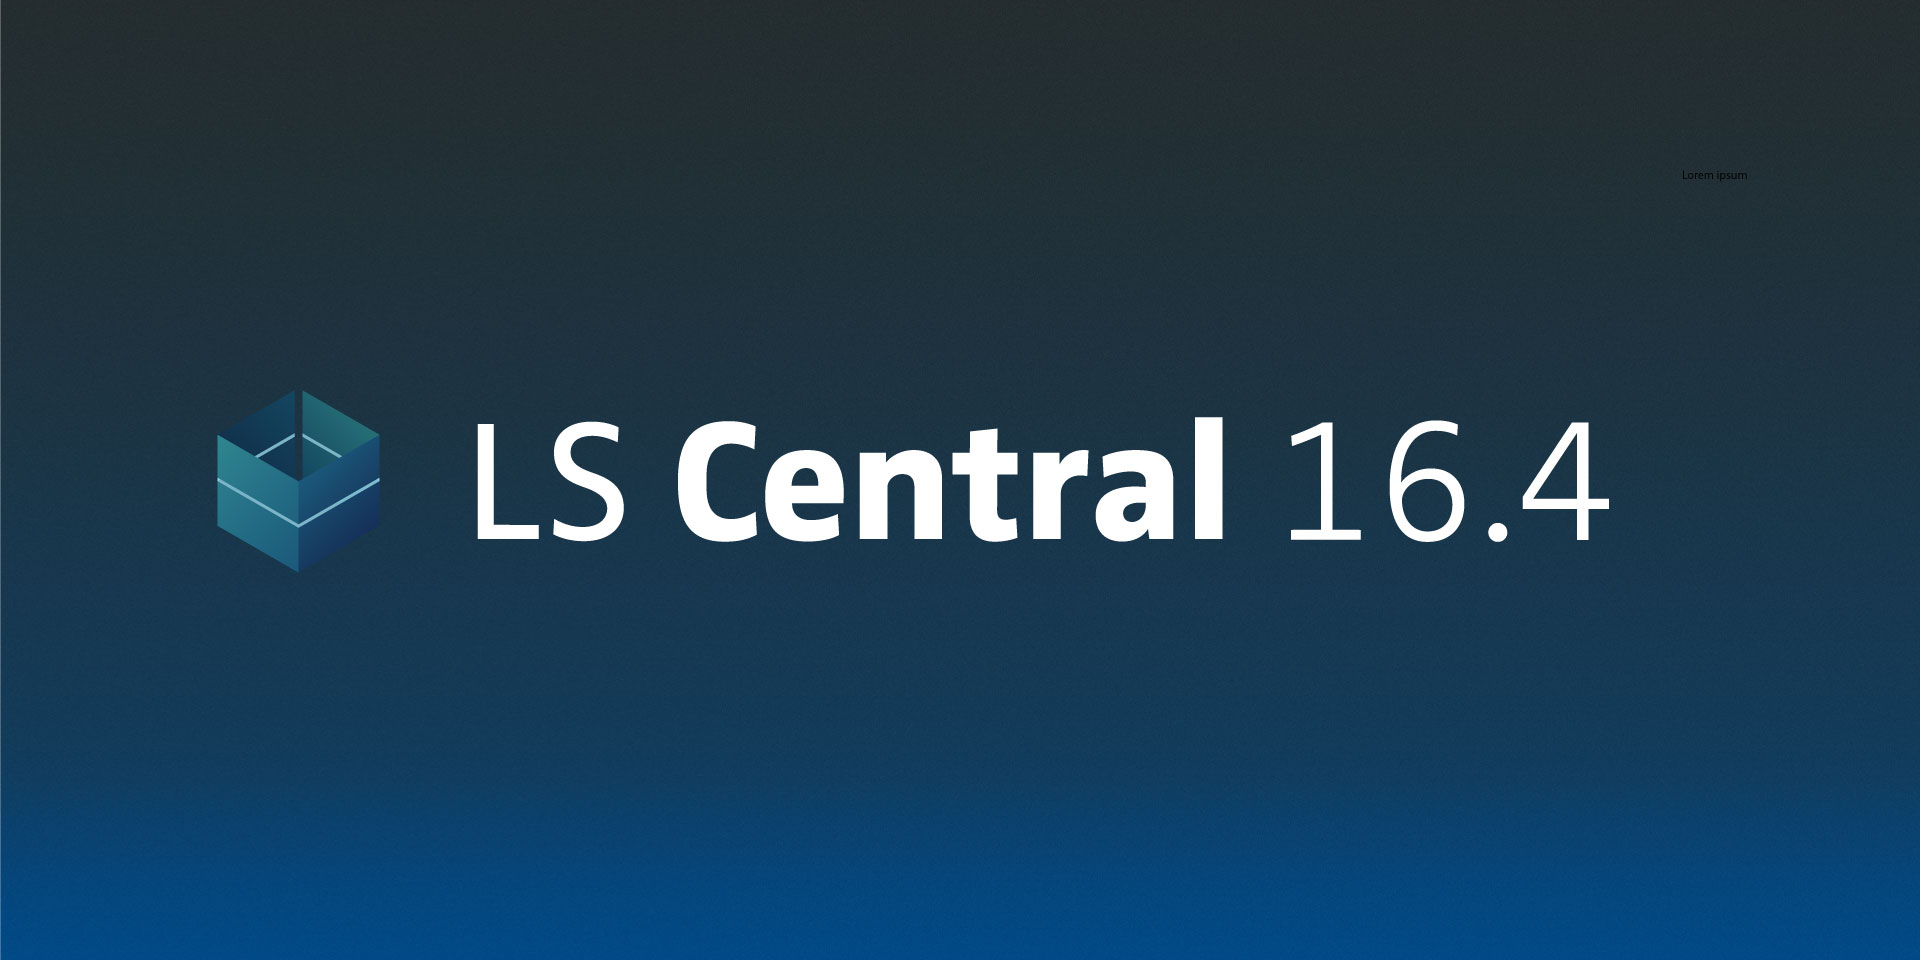 LS Central 16.4: enhanced replenishment, restaurant table waiting lists, calendar view of hotel bookings